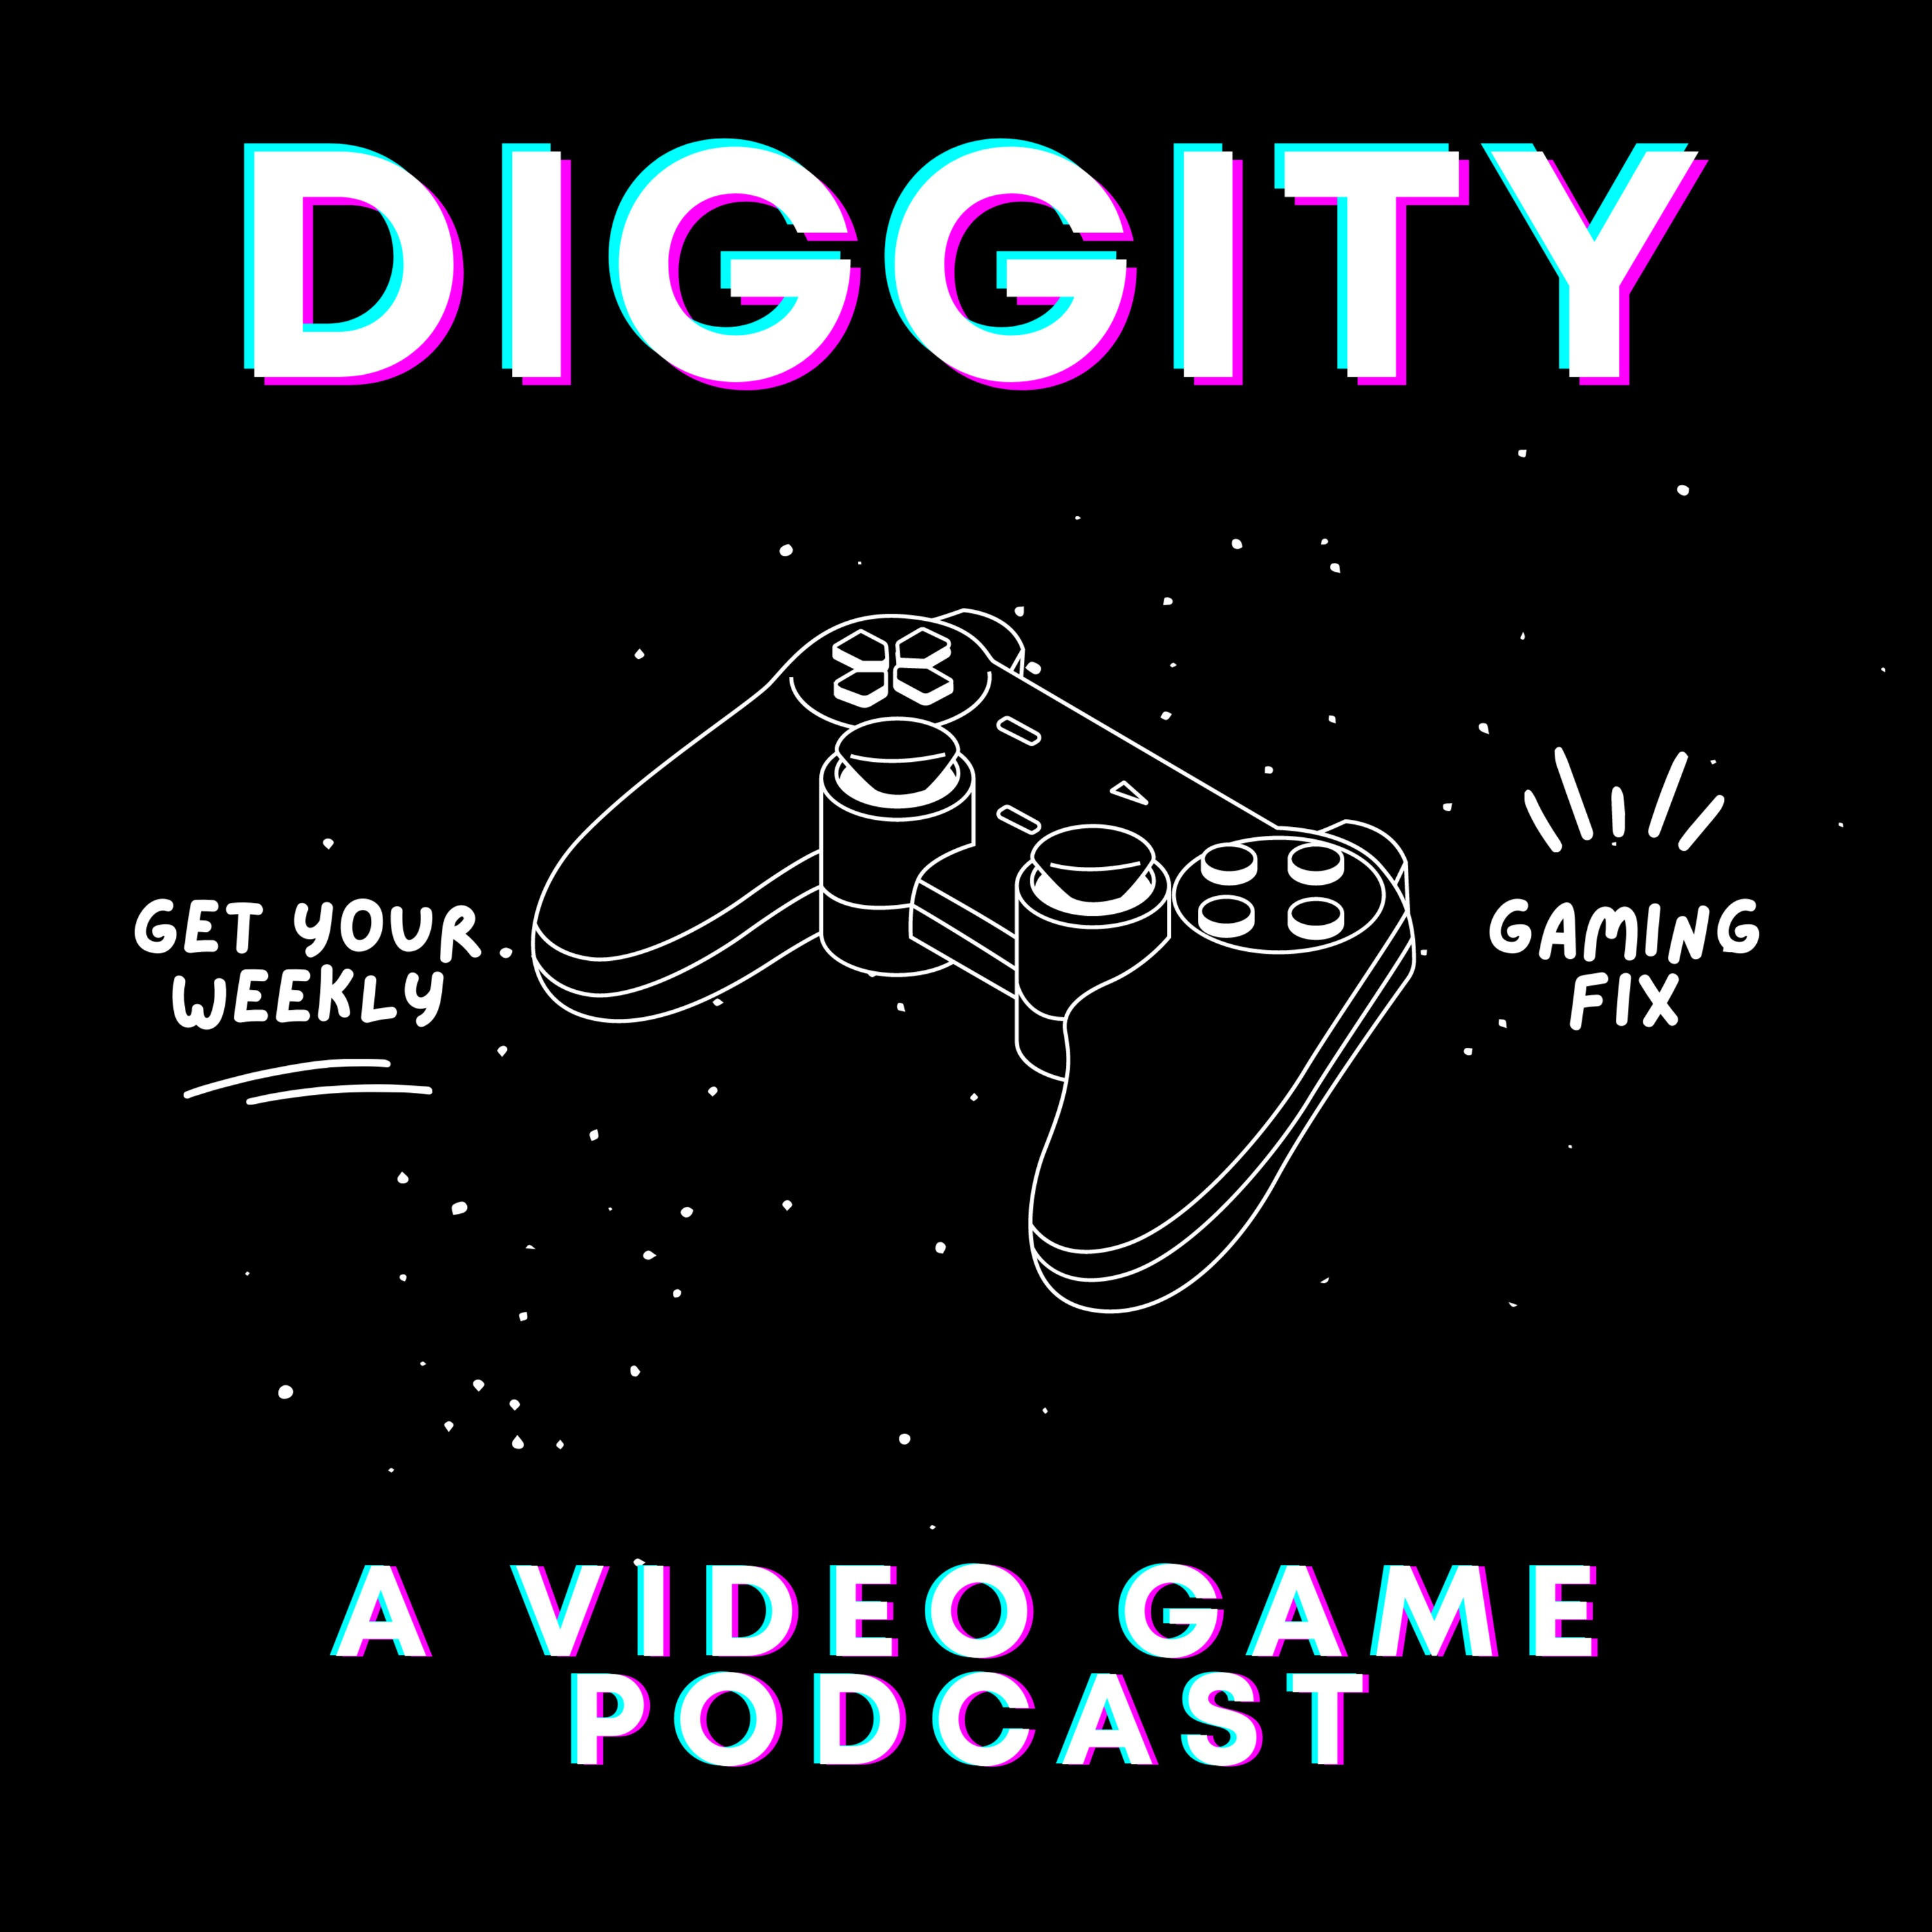 Diggity - A Video Game Podcast